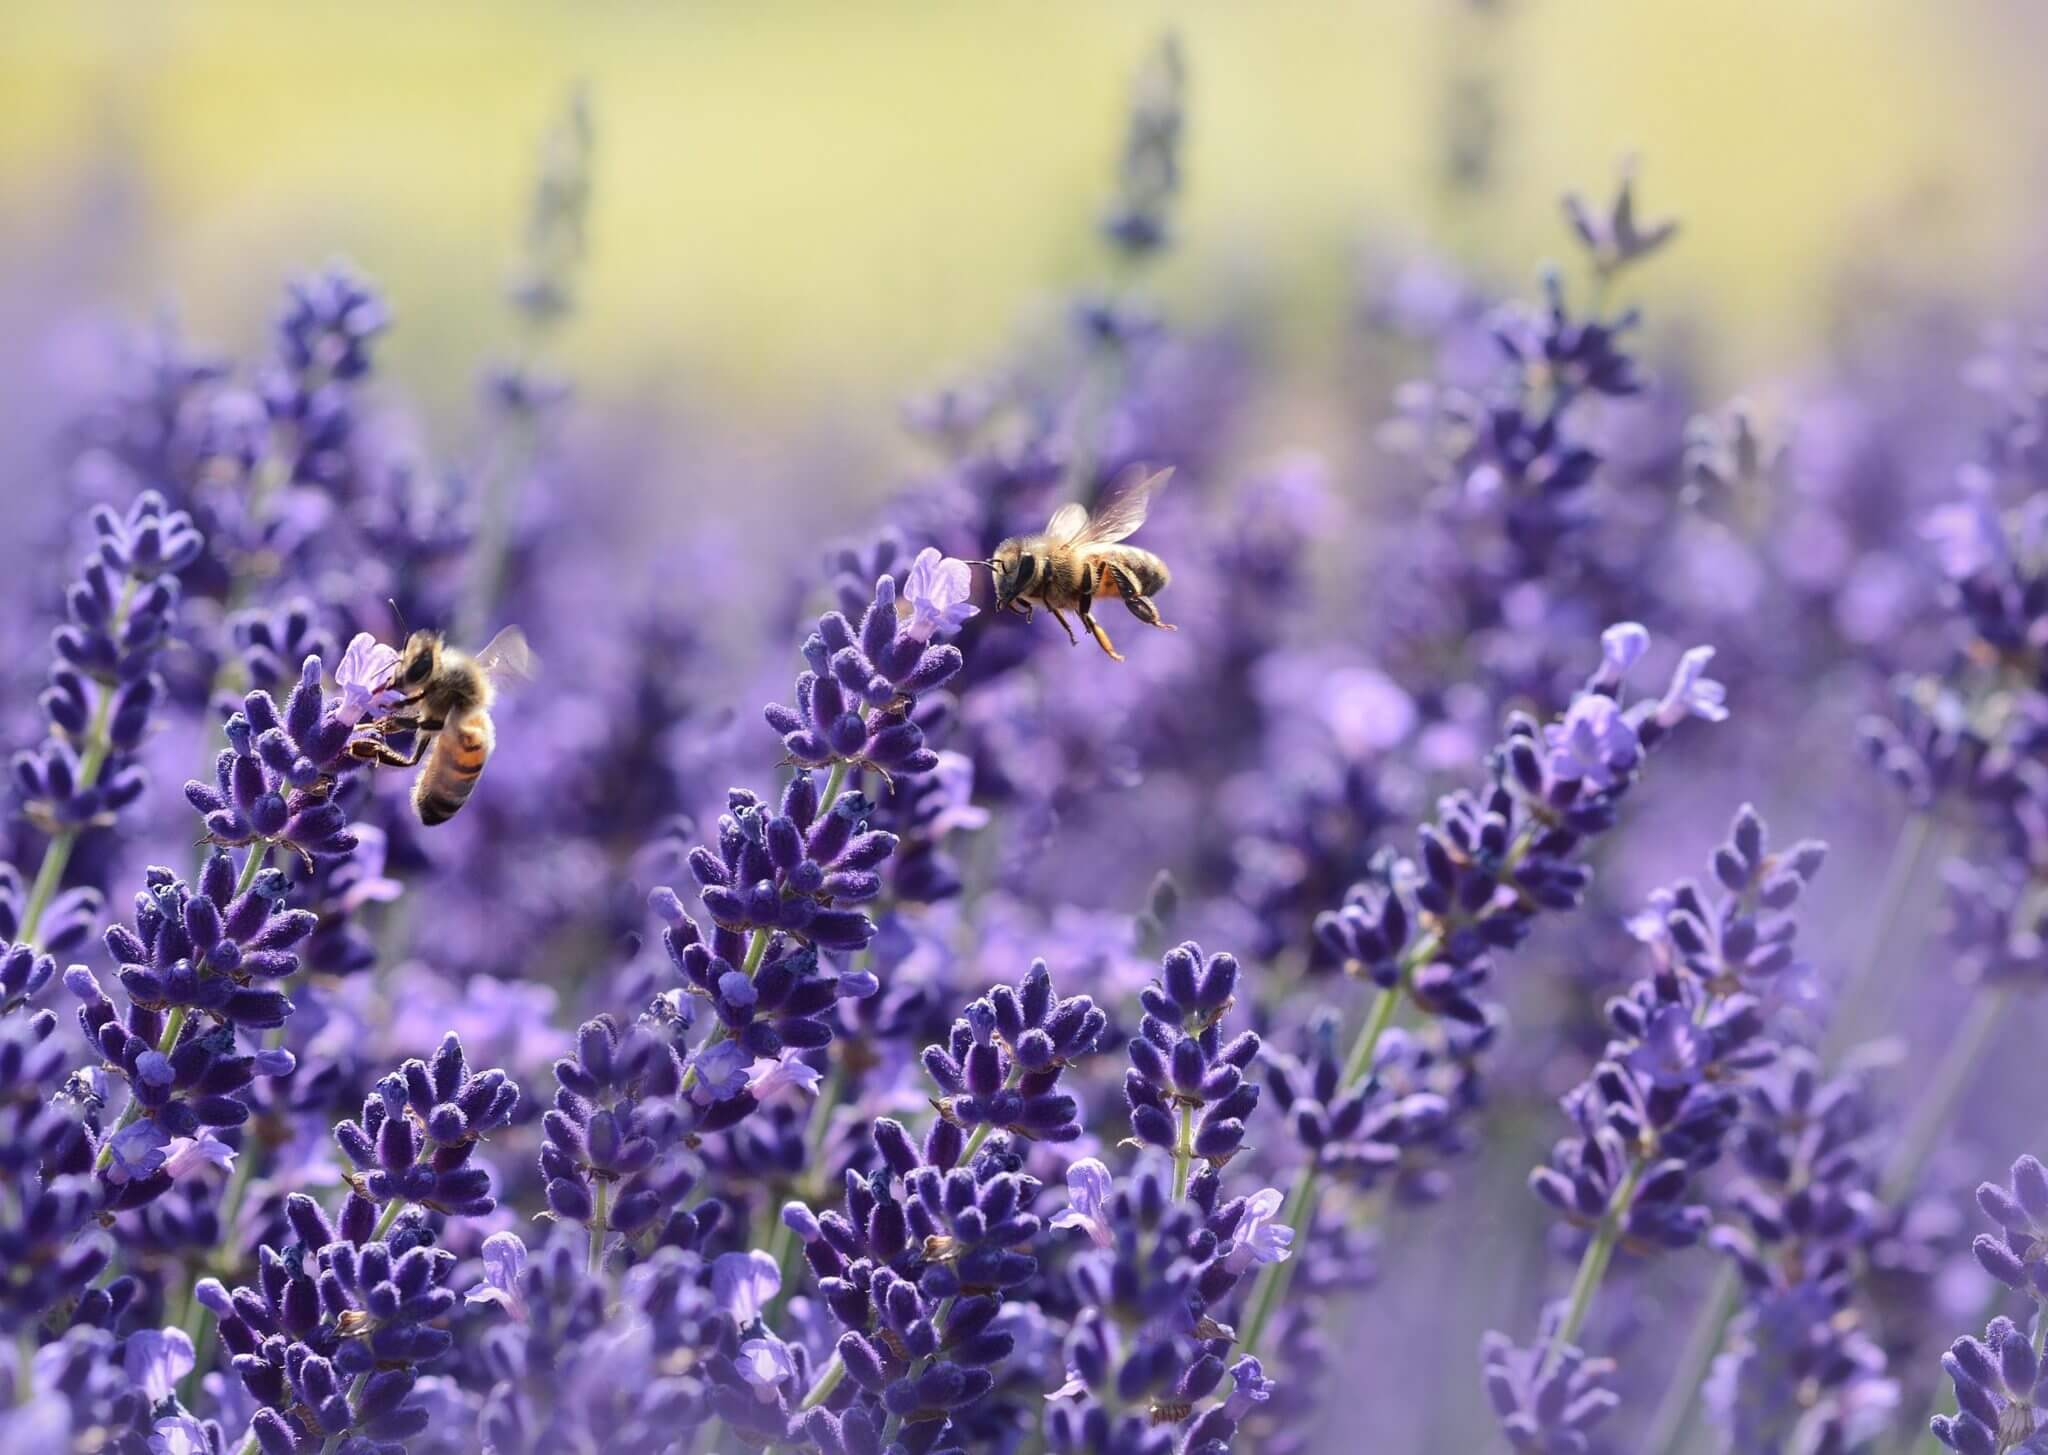 bees-bloom-blossom-164470